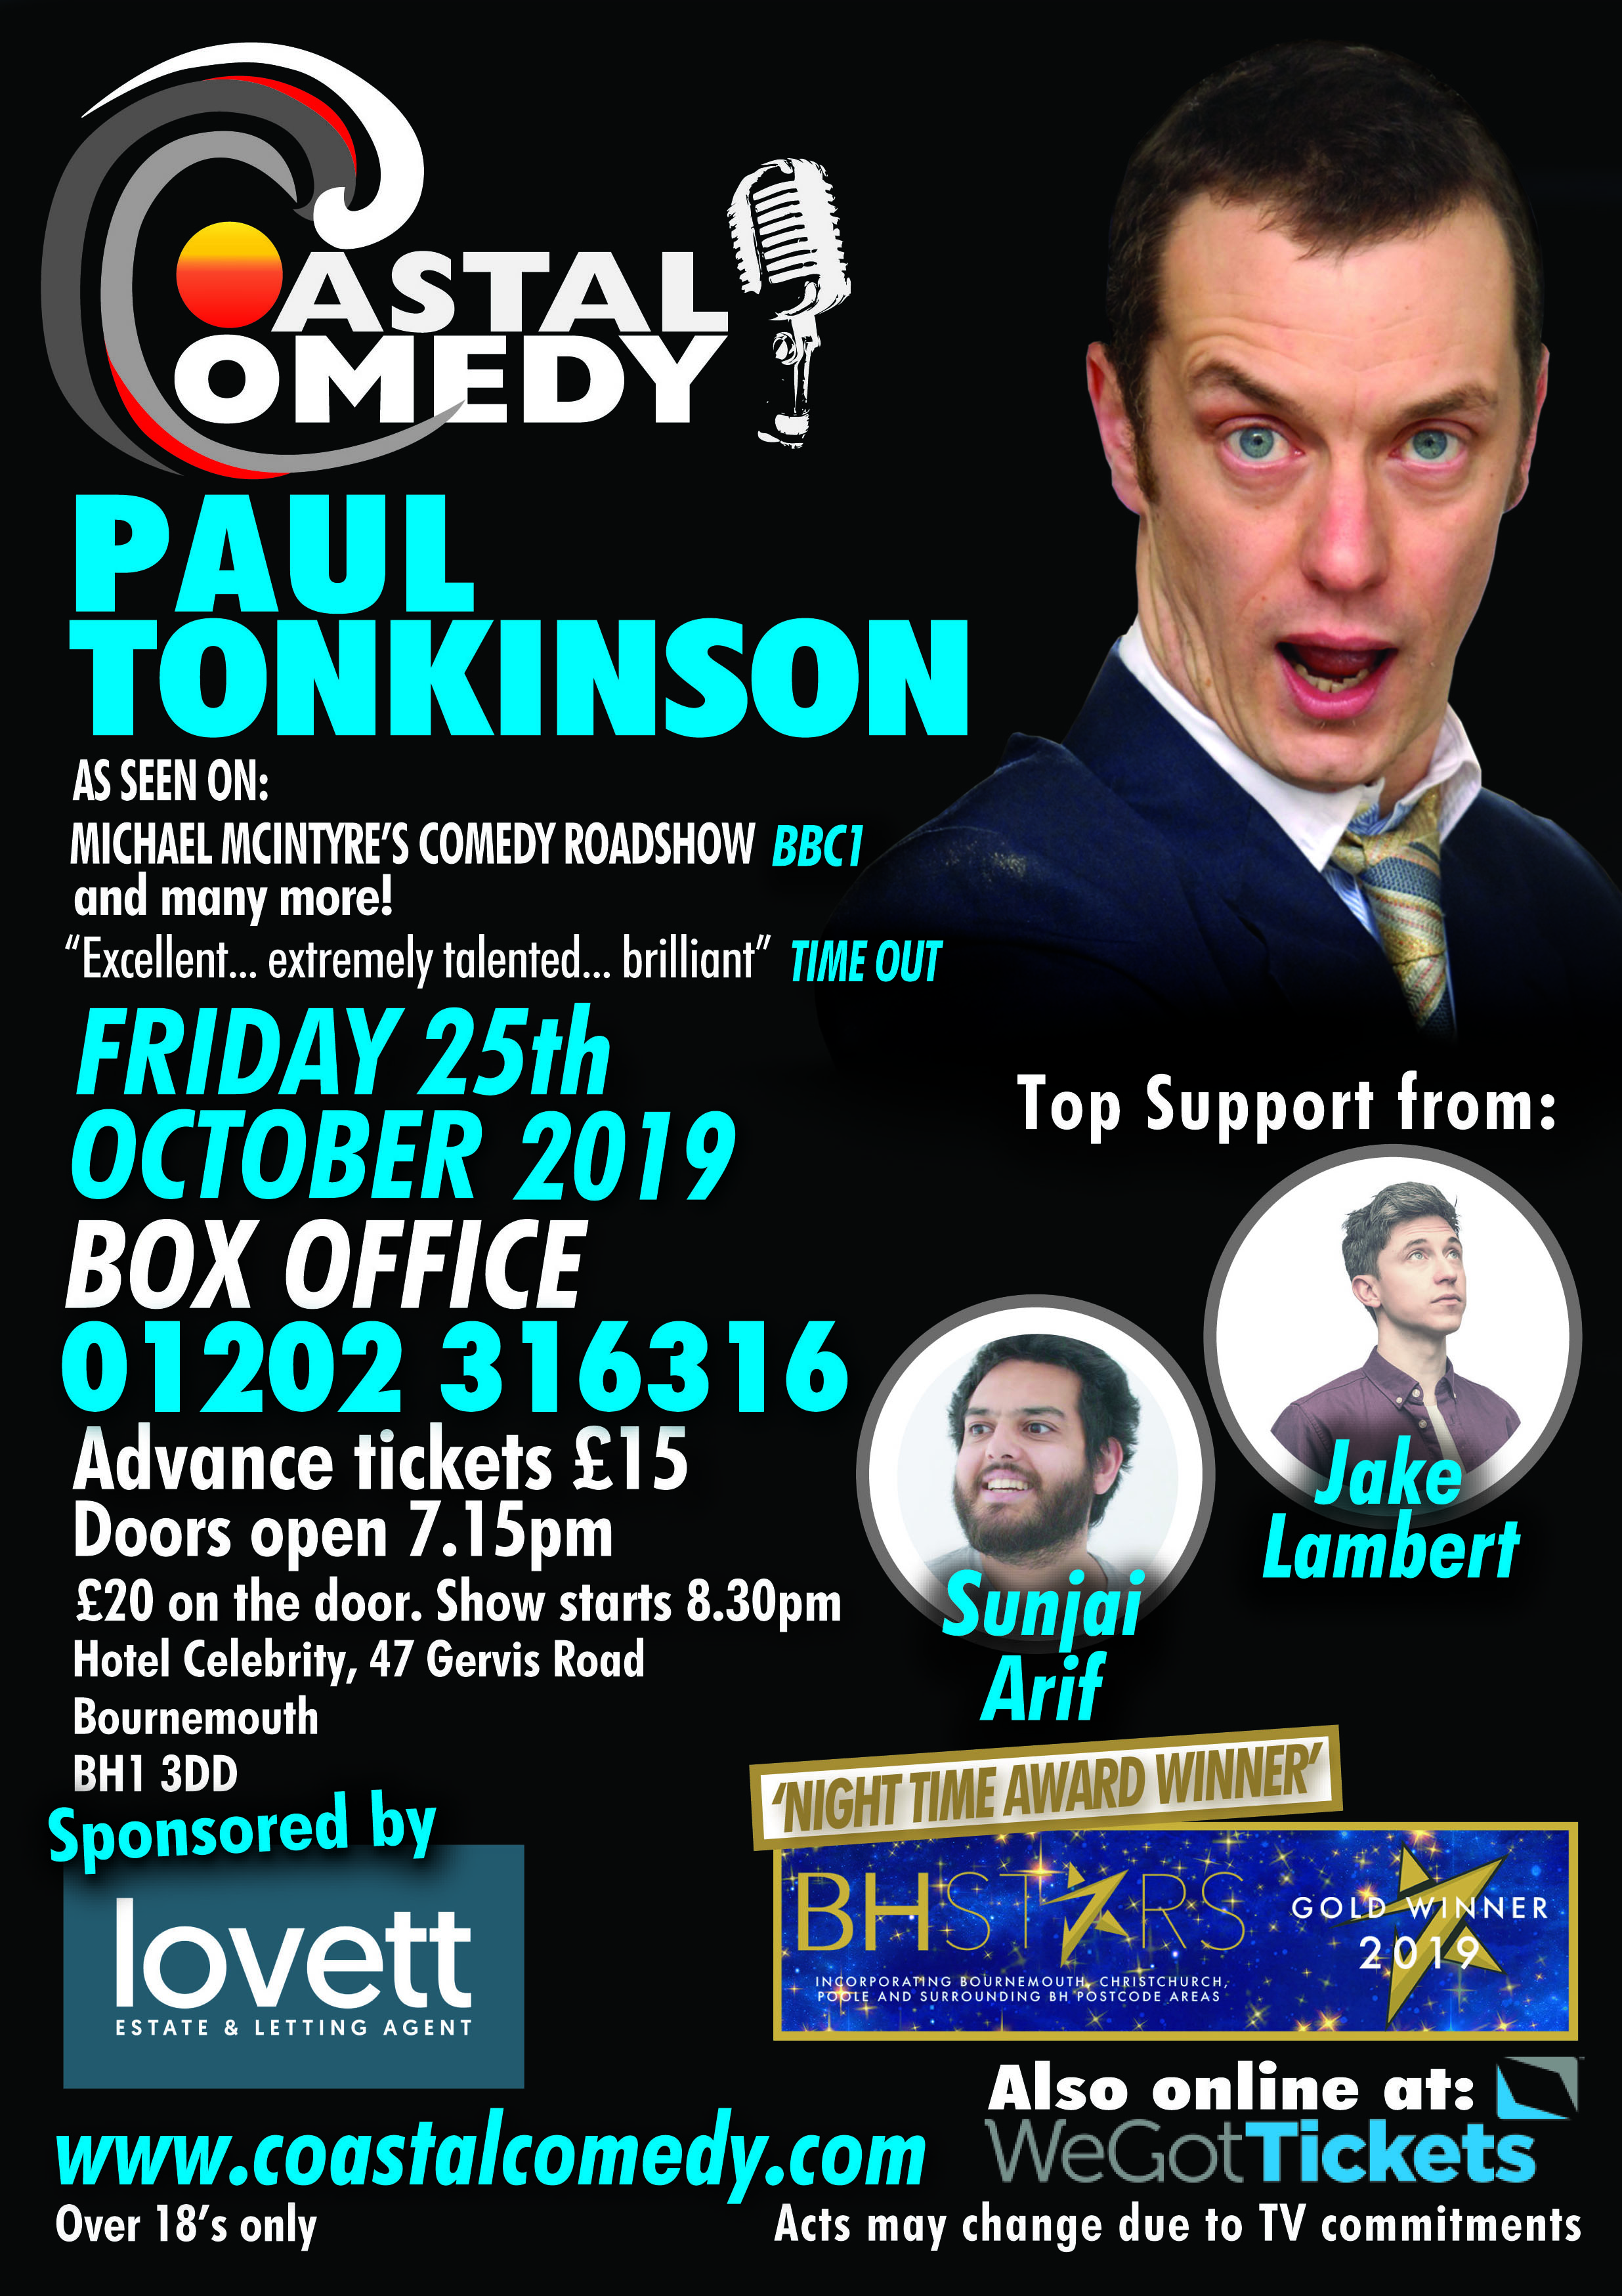 comedy club, bournemouth, paul tonkinson,lighthouse, tv headliner, poole, coastal comedy, lighthouse, standup,